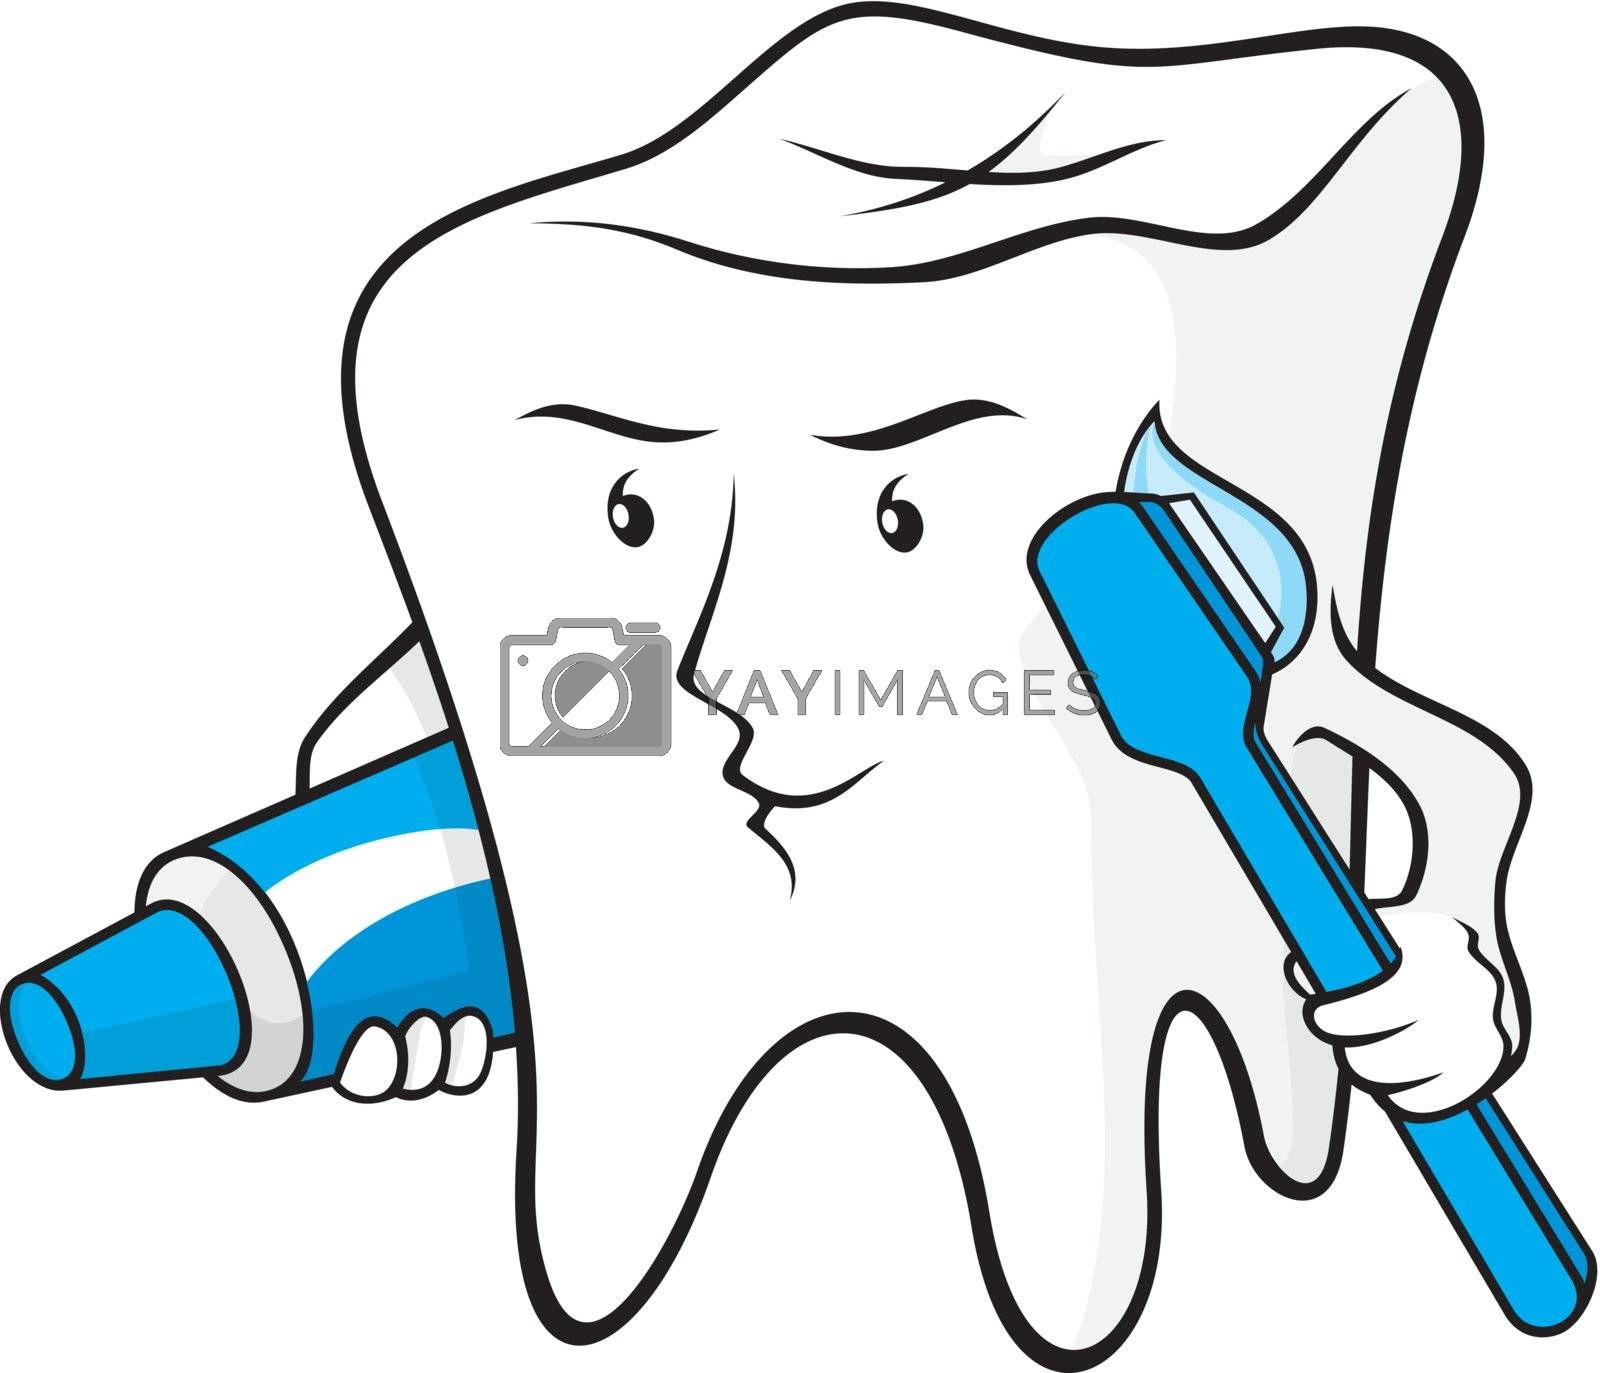 Tooth protected by sifis